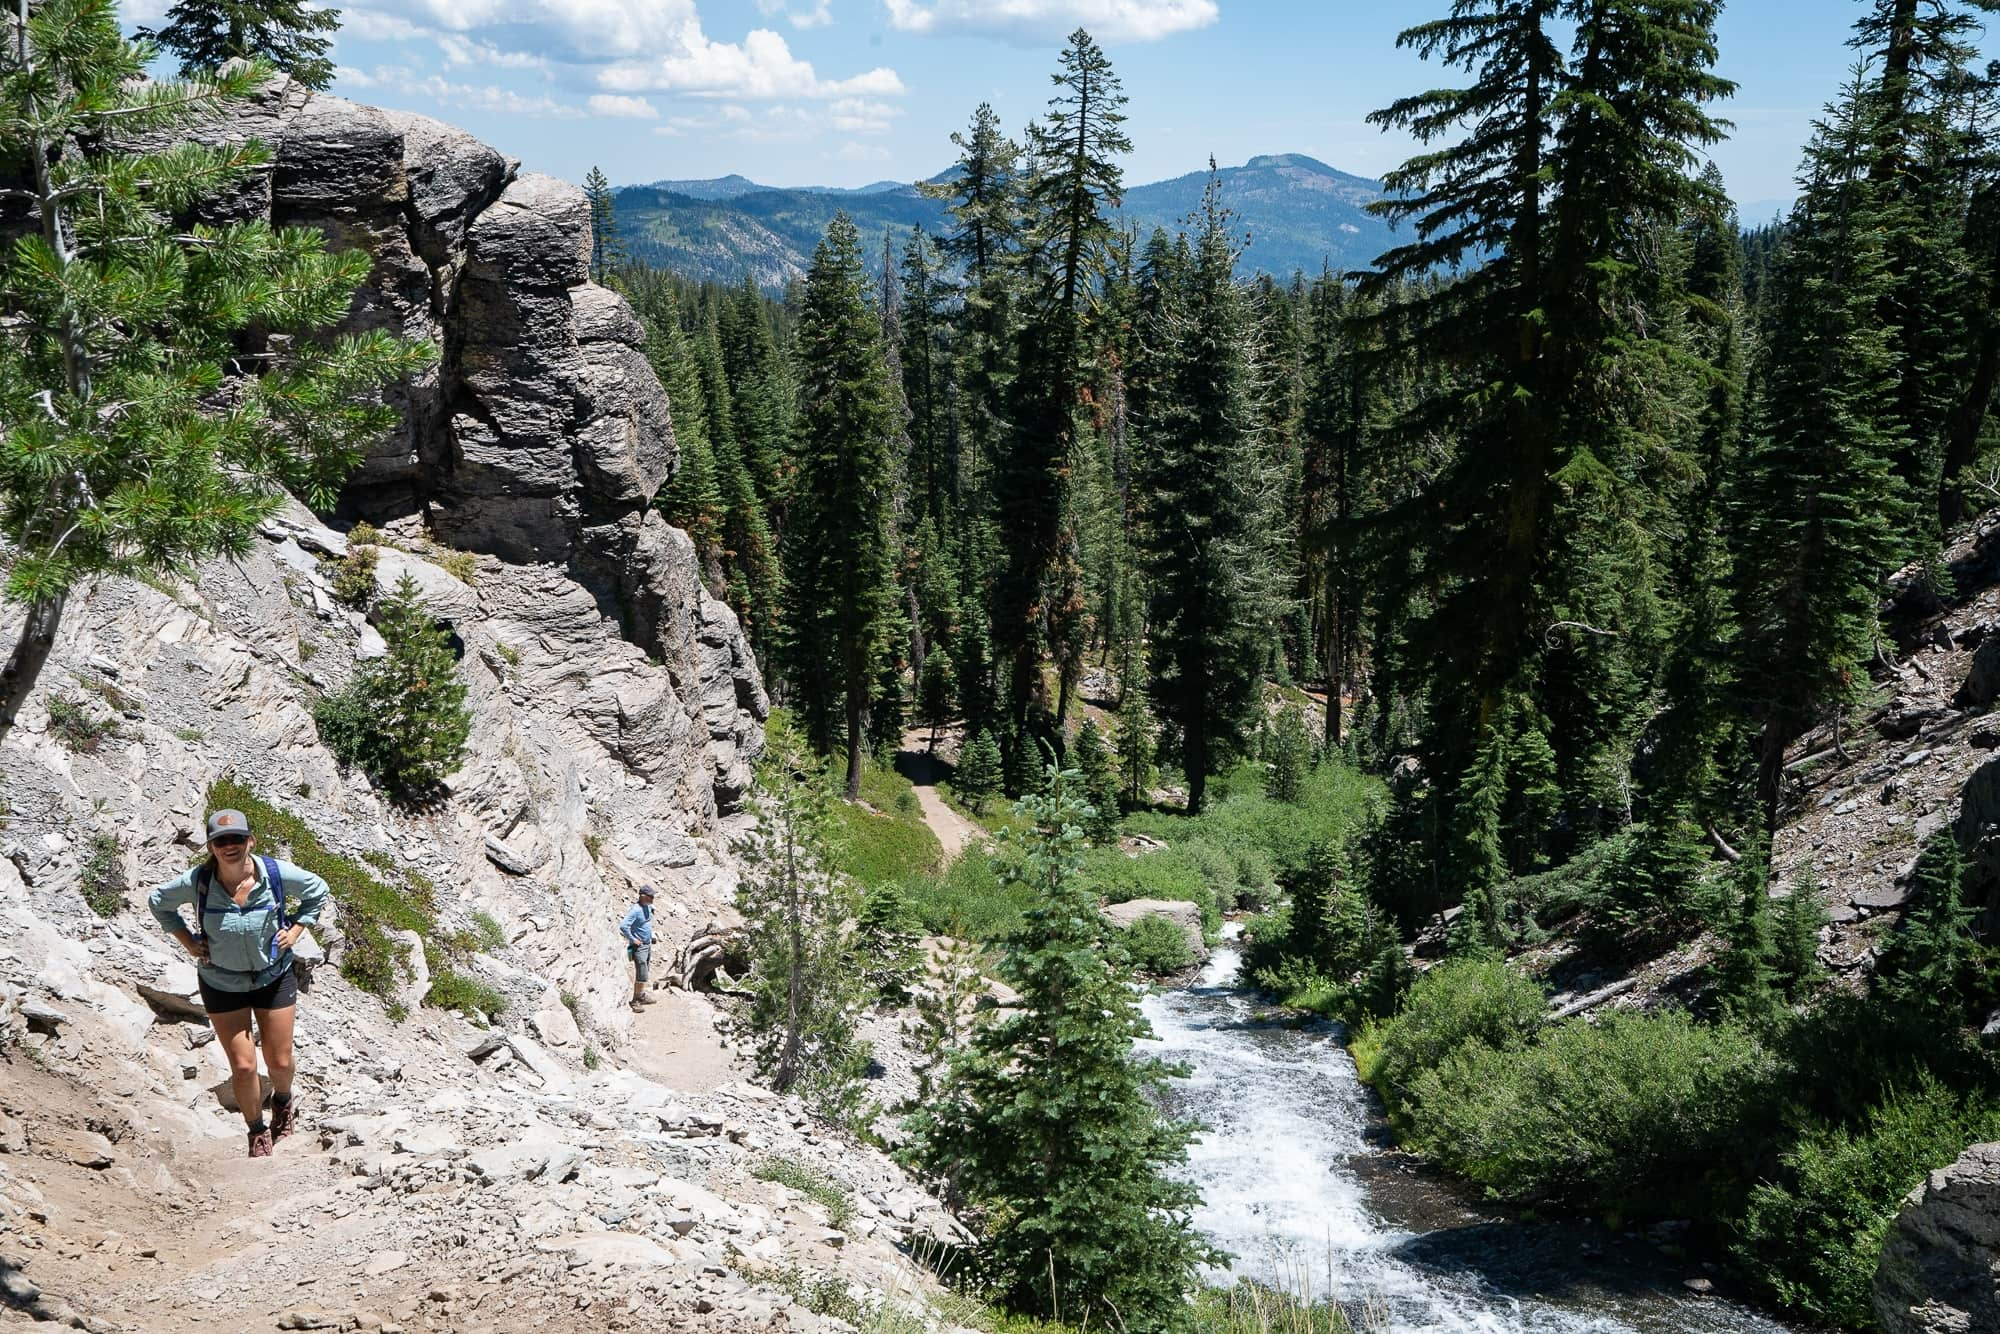 Kings Creek Falls // Plan your Lassen National Park hikes with our roundup of the best hikes, including boiling hot pots, alpine lakes, and big summits.